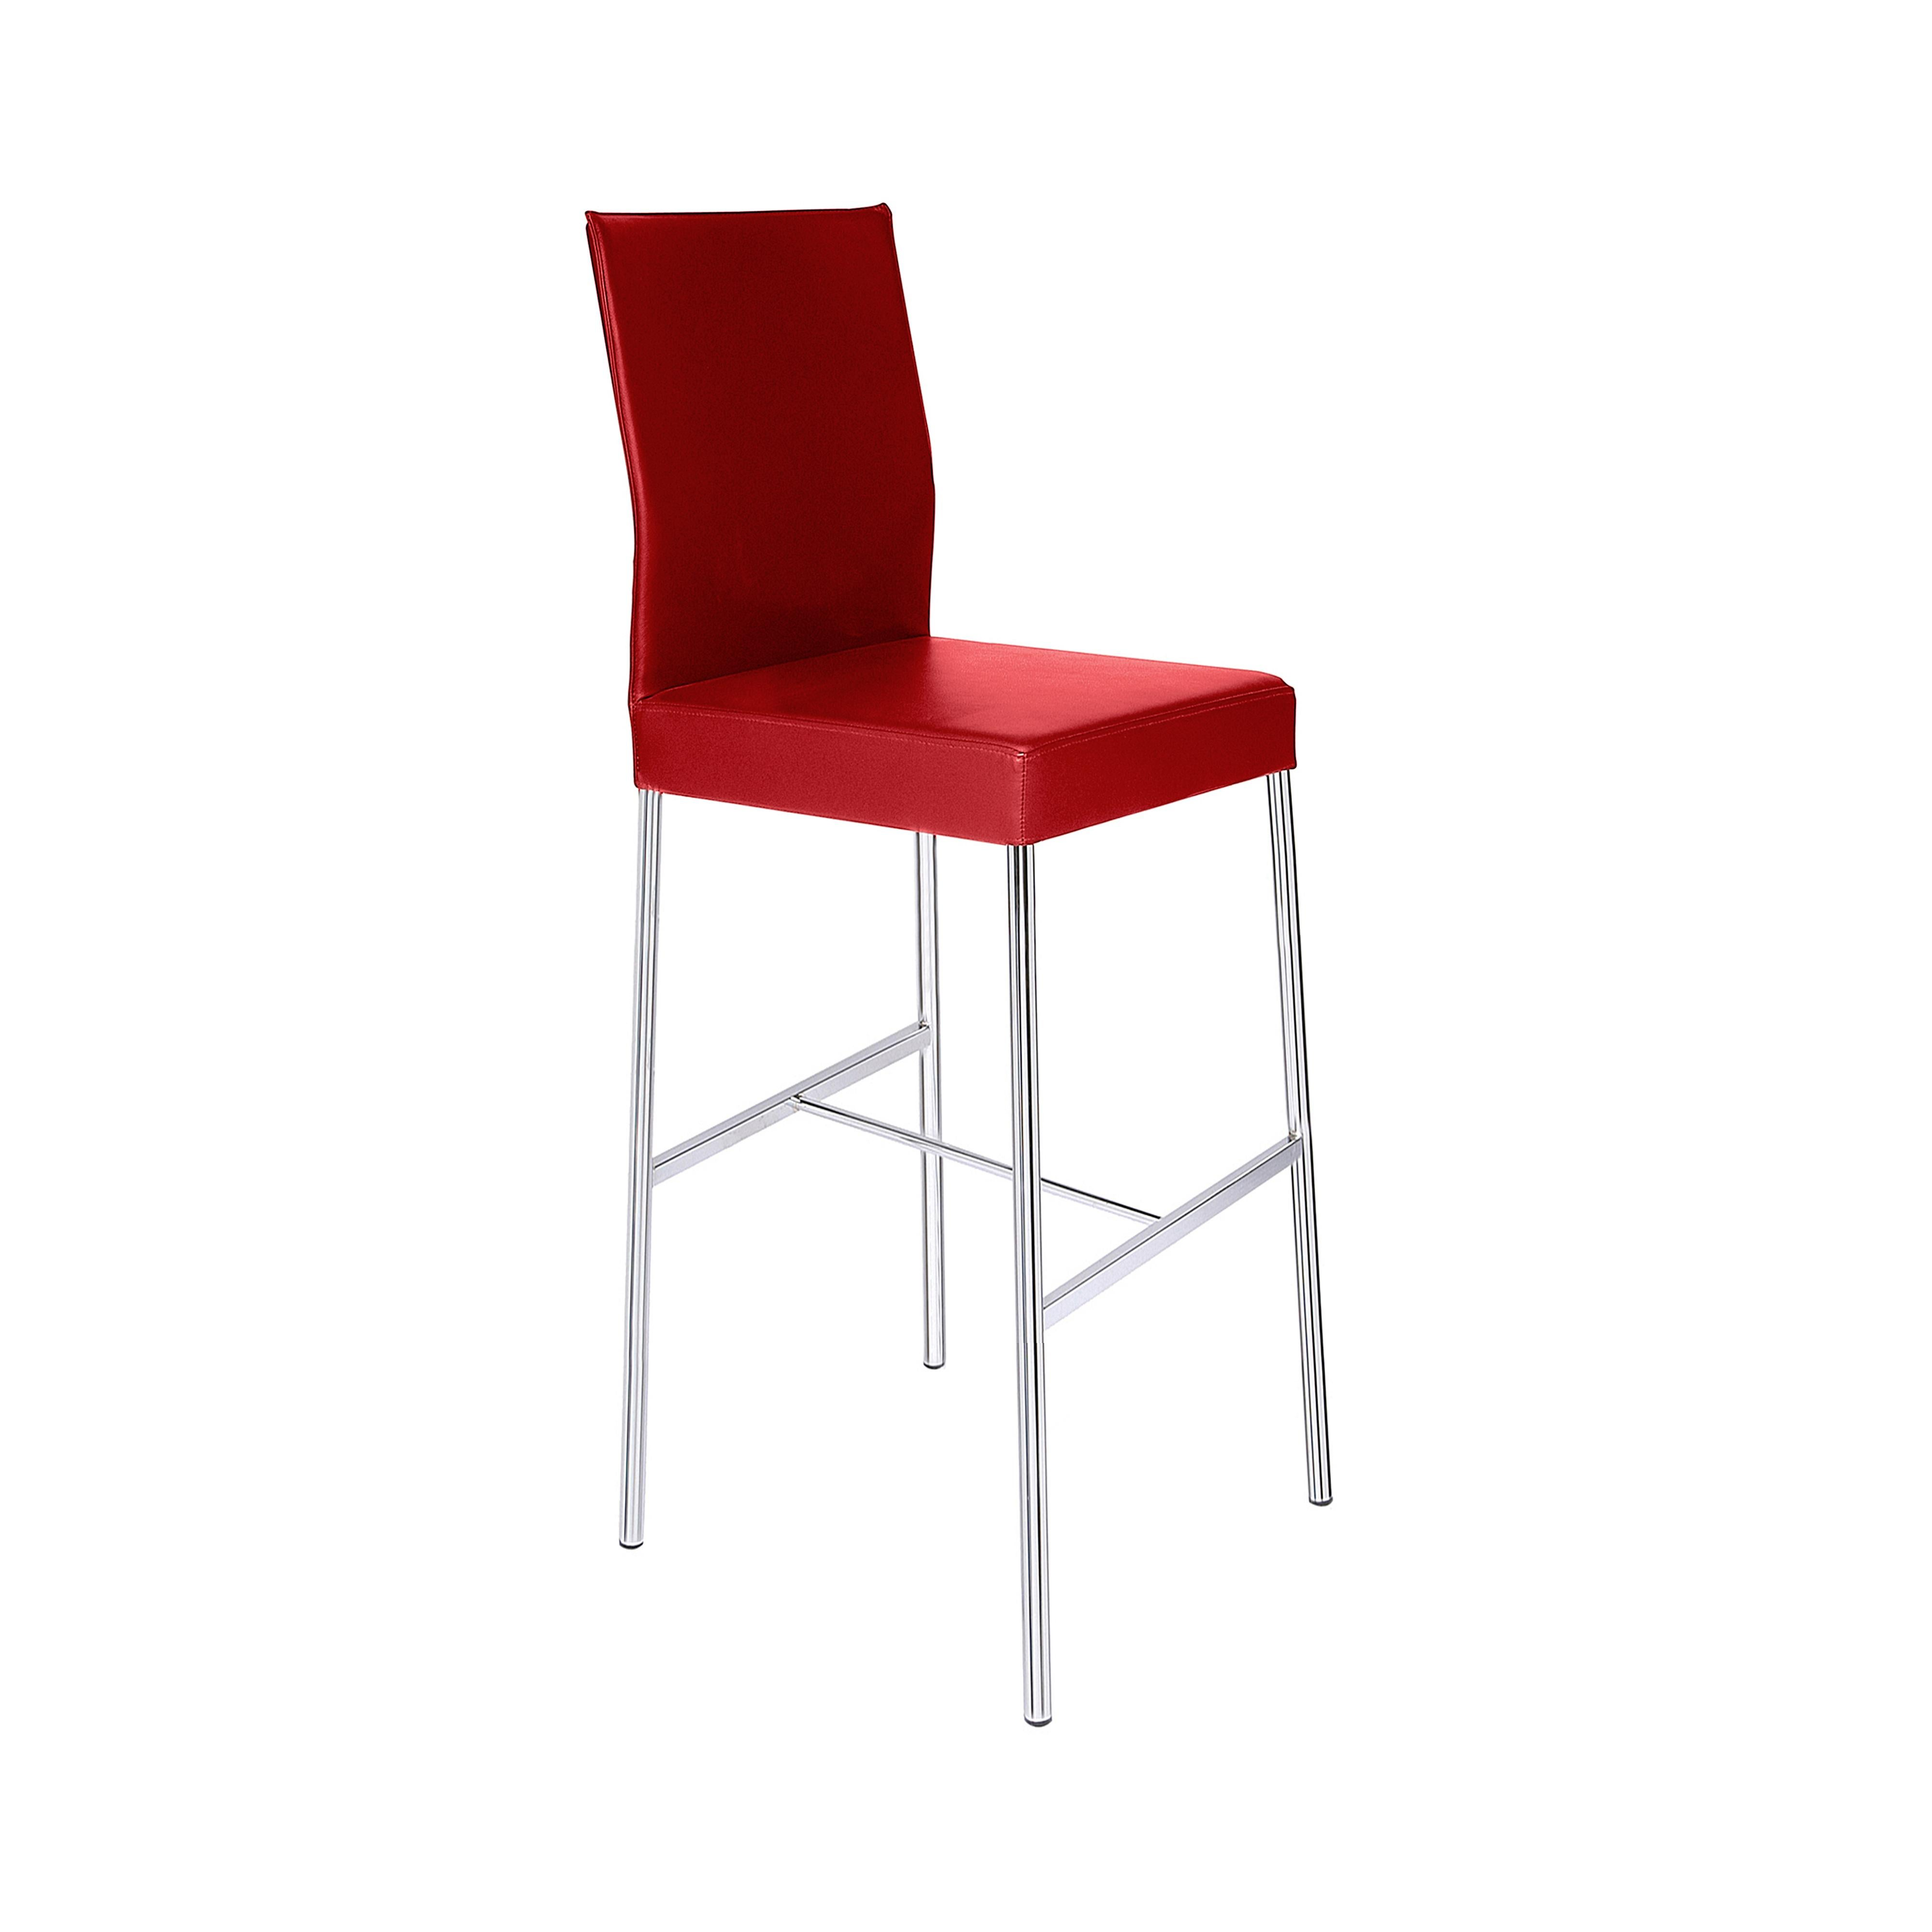 GLOOH Counter Stool in Red Leather by KFF